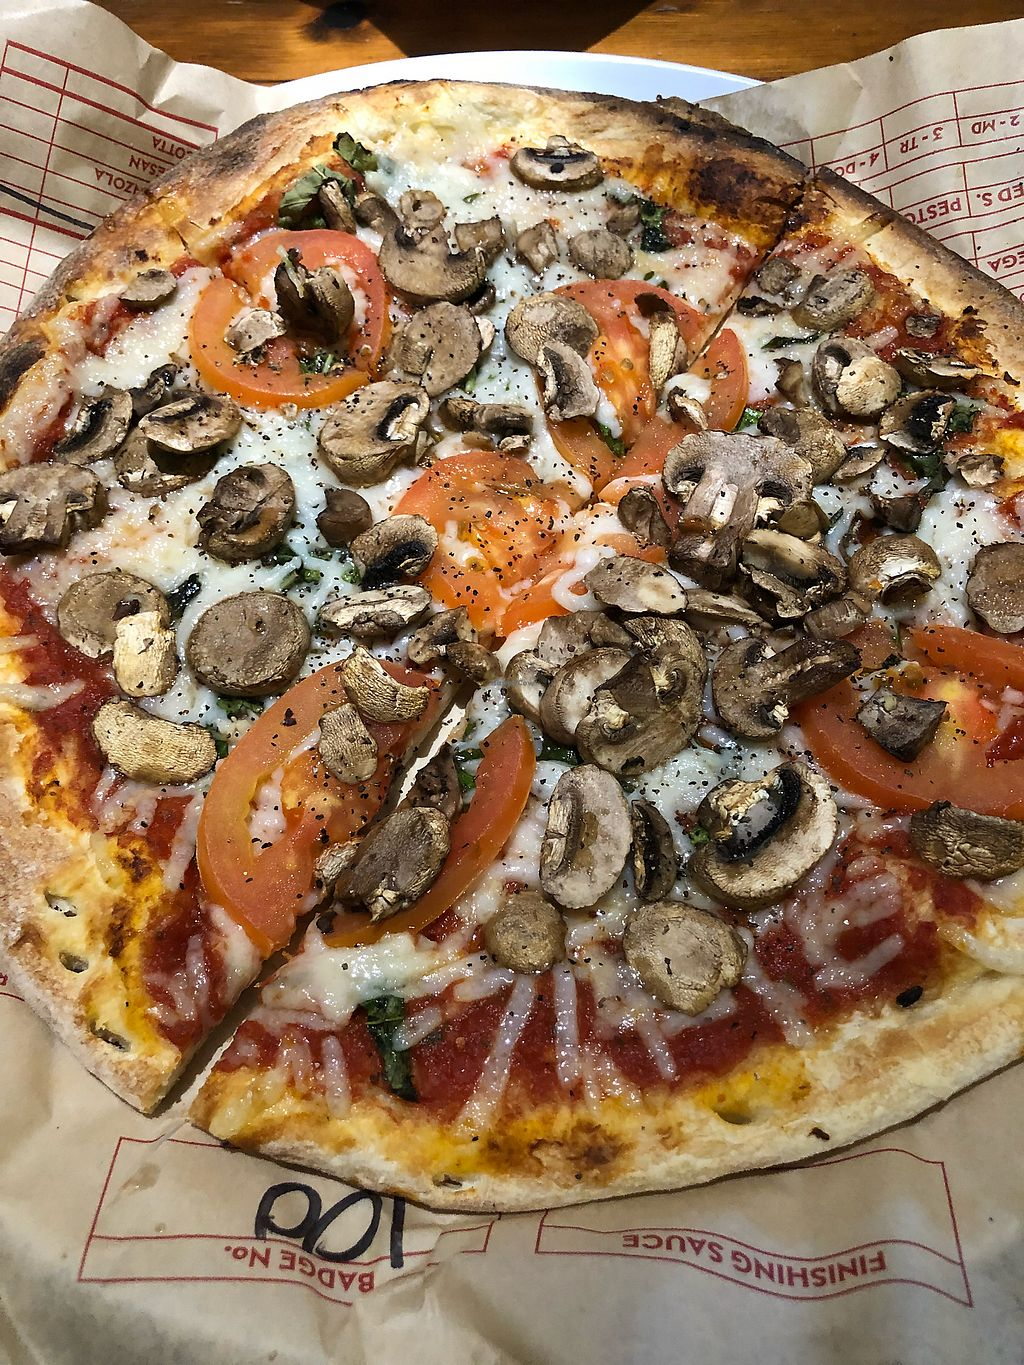 "Photo of Mod Pizza  by <a href=""/members/profile/CherieKain"">CherieKain</a> <br/>One price, whatever toppings and they have dairy free cheese! <br/> March 15, 2018  - <a href='/contact/abuse/image/93638/370815'>Report</a>"